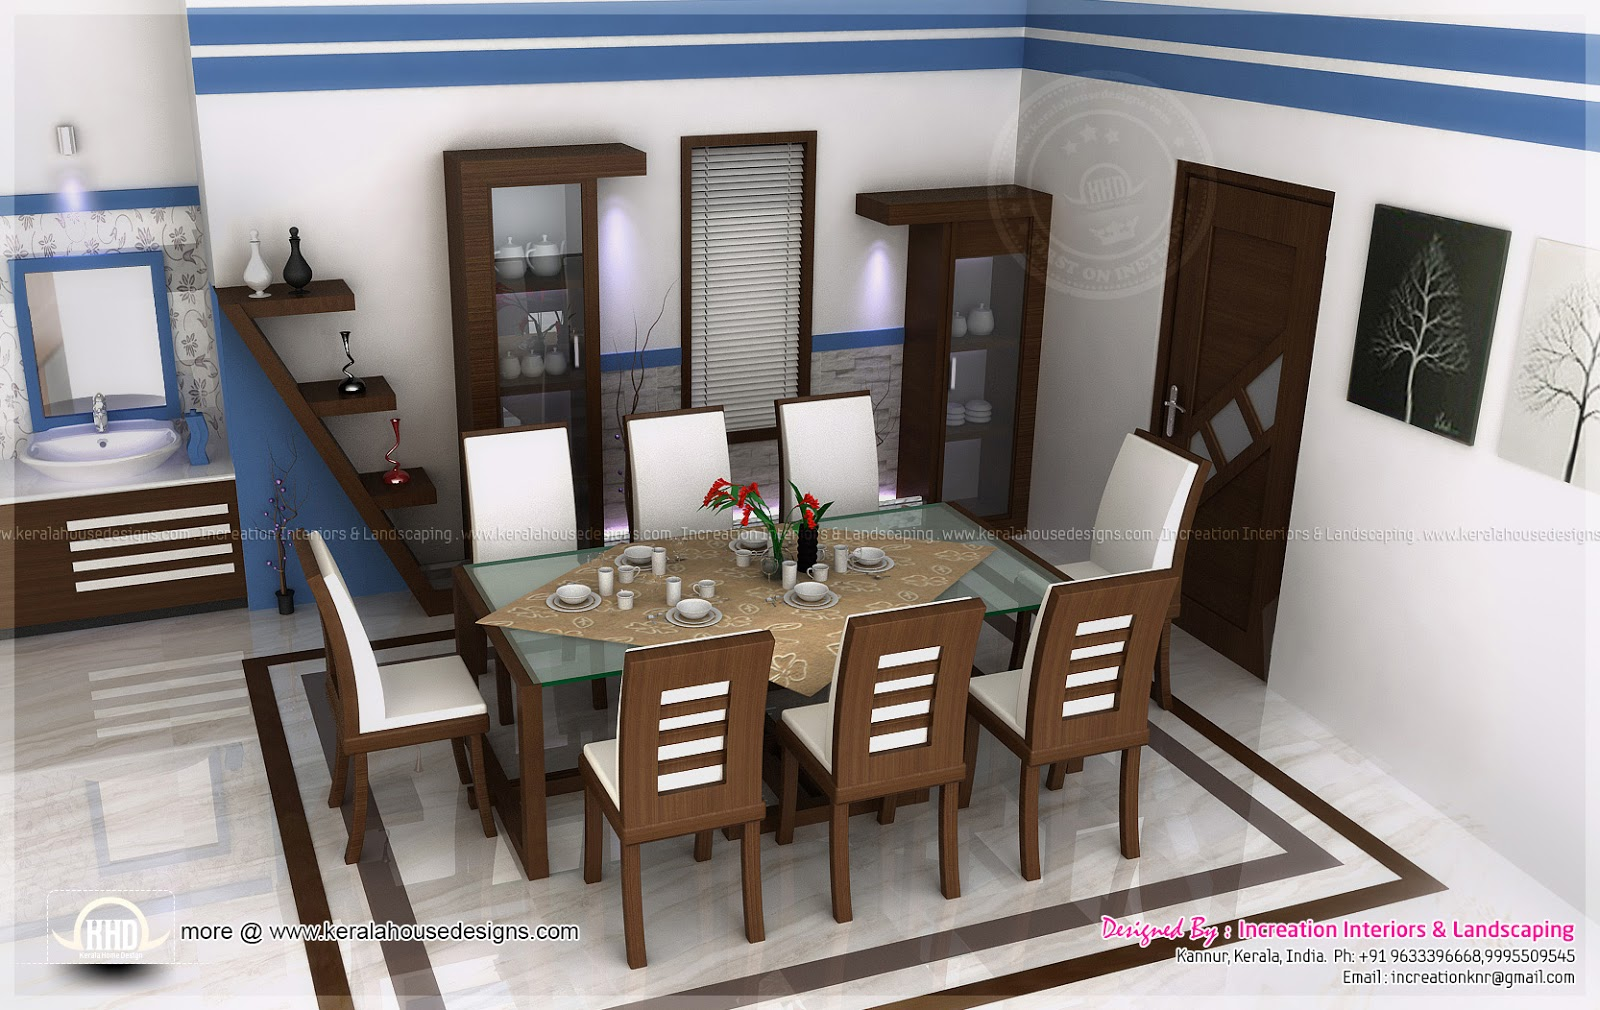 House interior ideas in 3d rendering kerala home design for Interior house design burlington